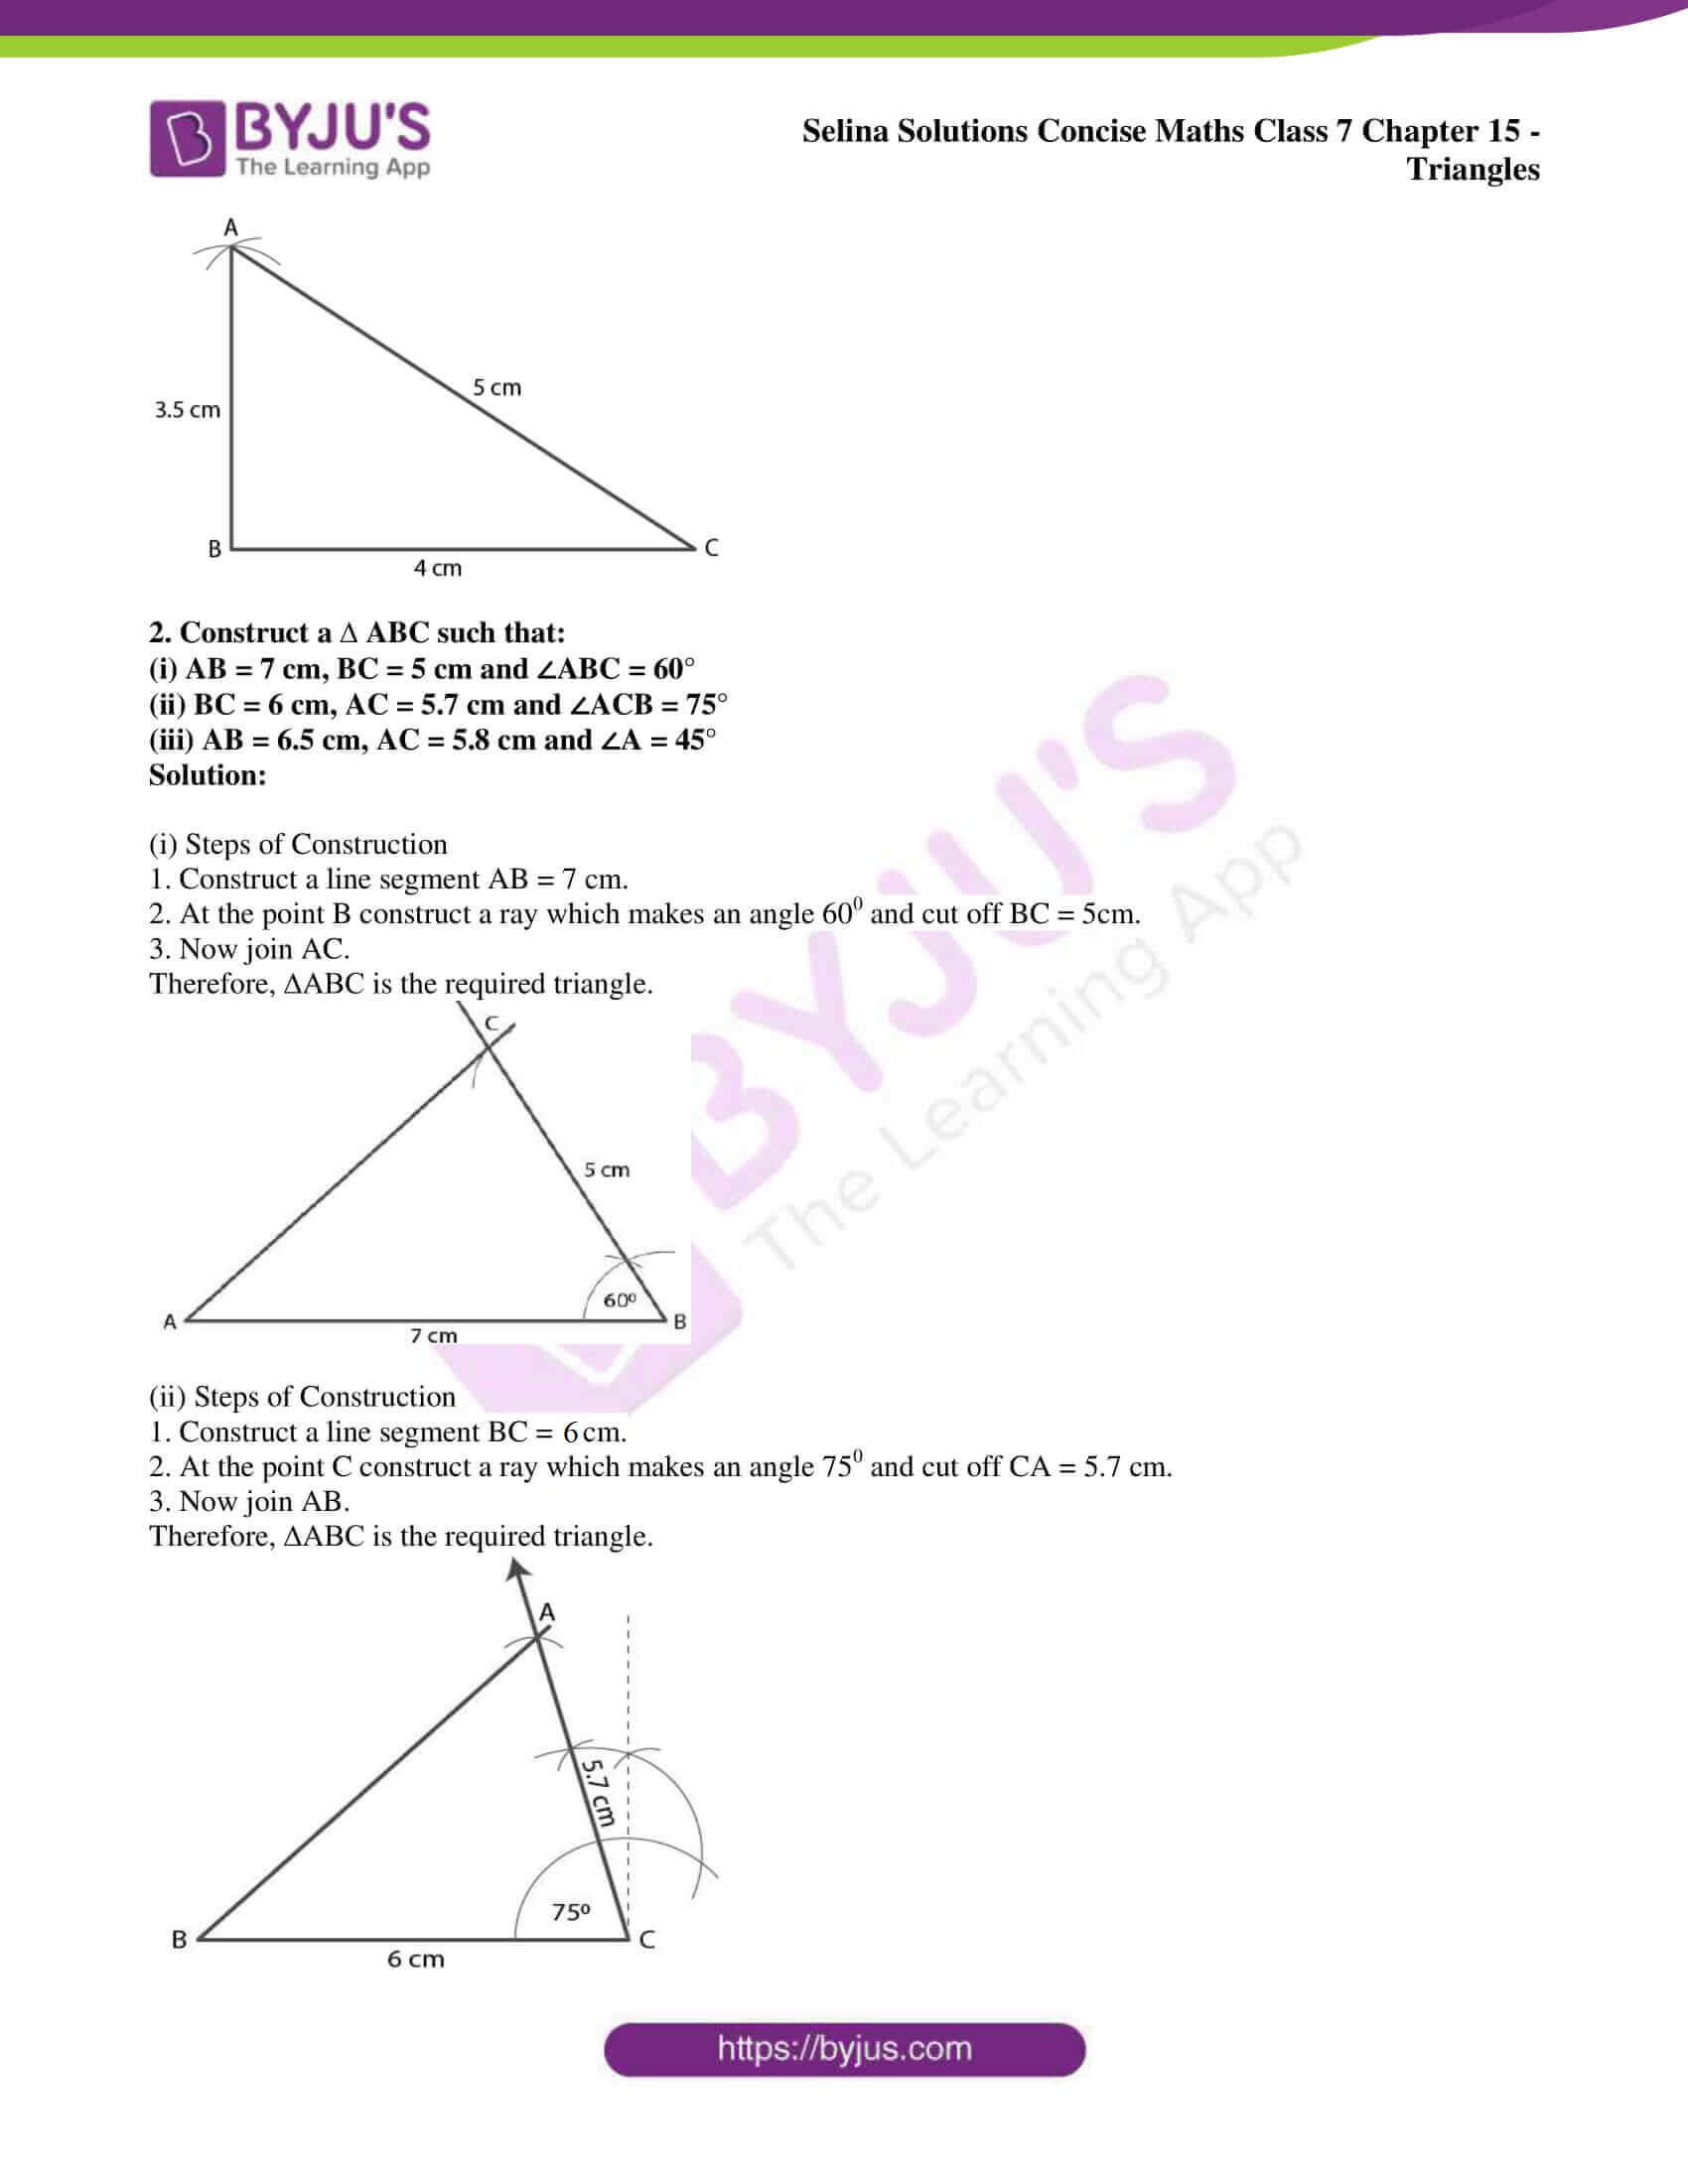 selina sol concise maths class 7 chapter 15 ex c 02